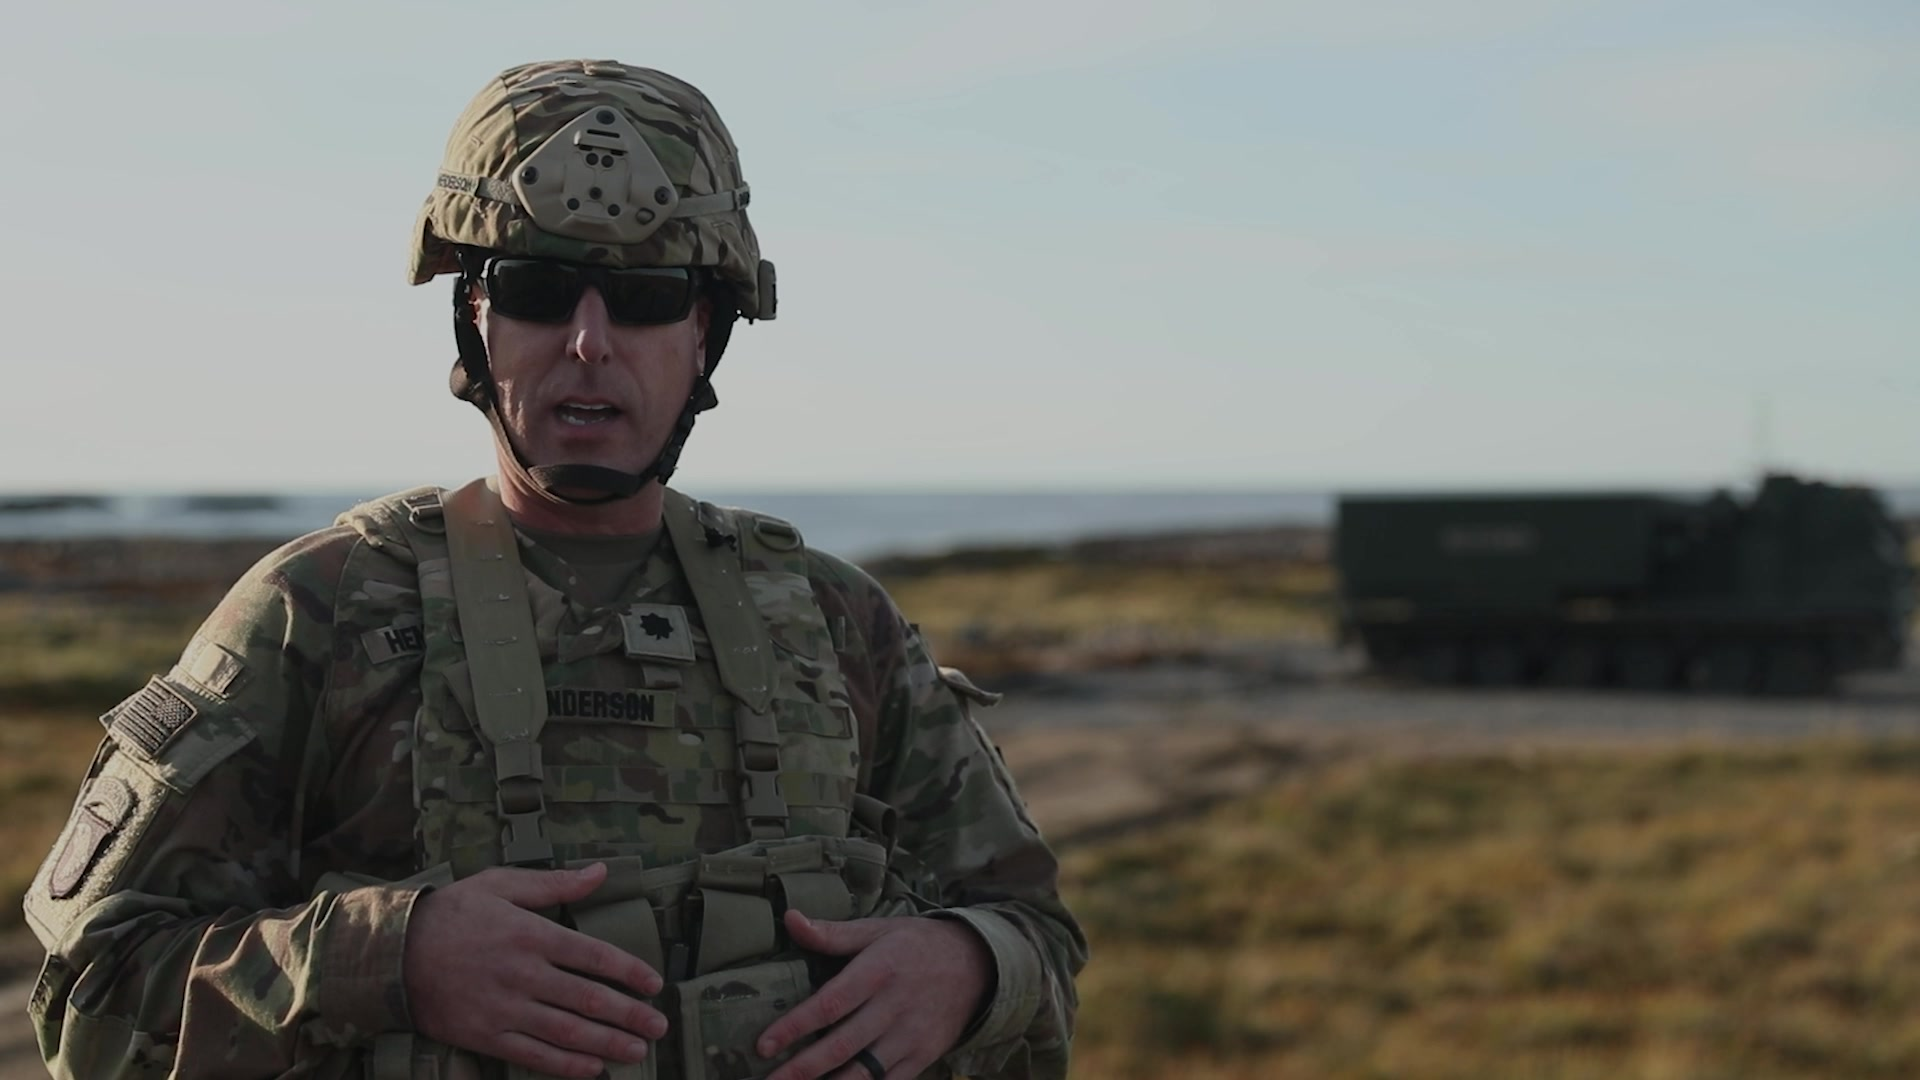 Thunder Cloud live-fire exercise, LTC Dave Henderson Interview